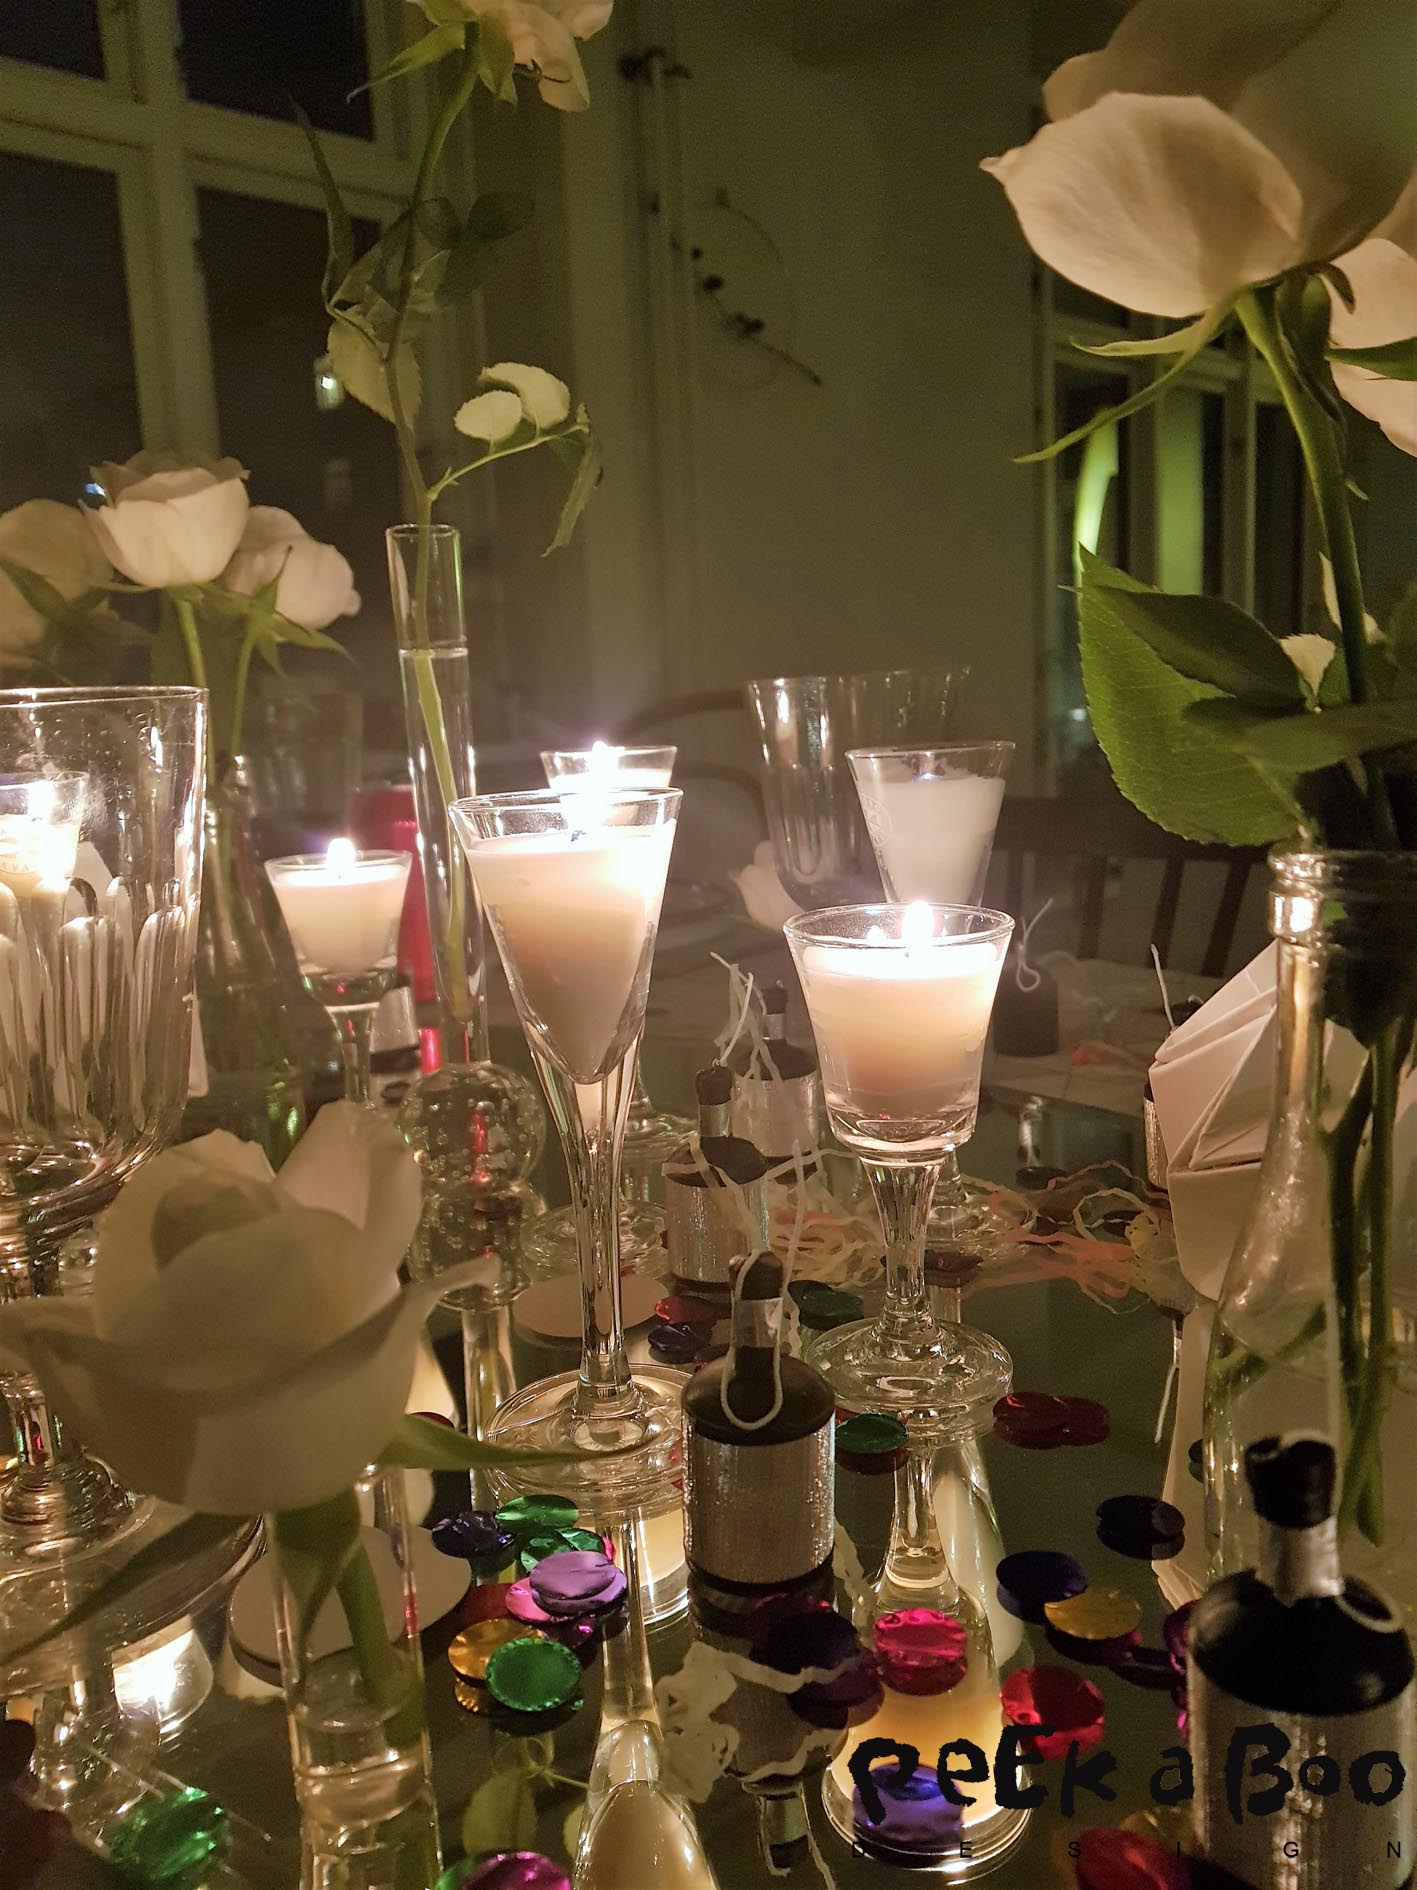 The New Years tablesetting after the lights were lit.